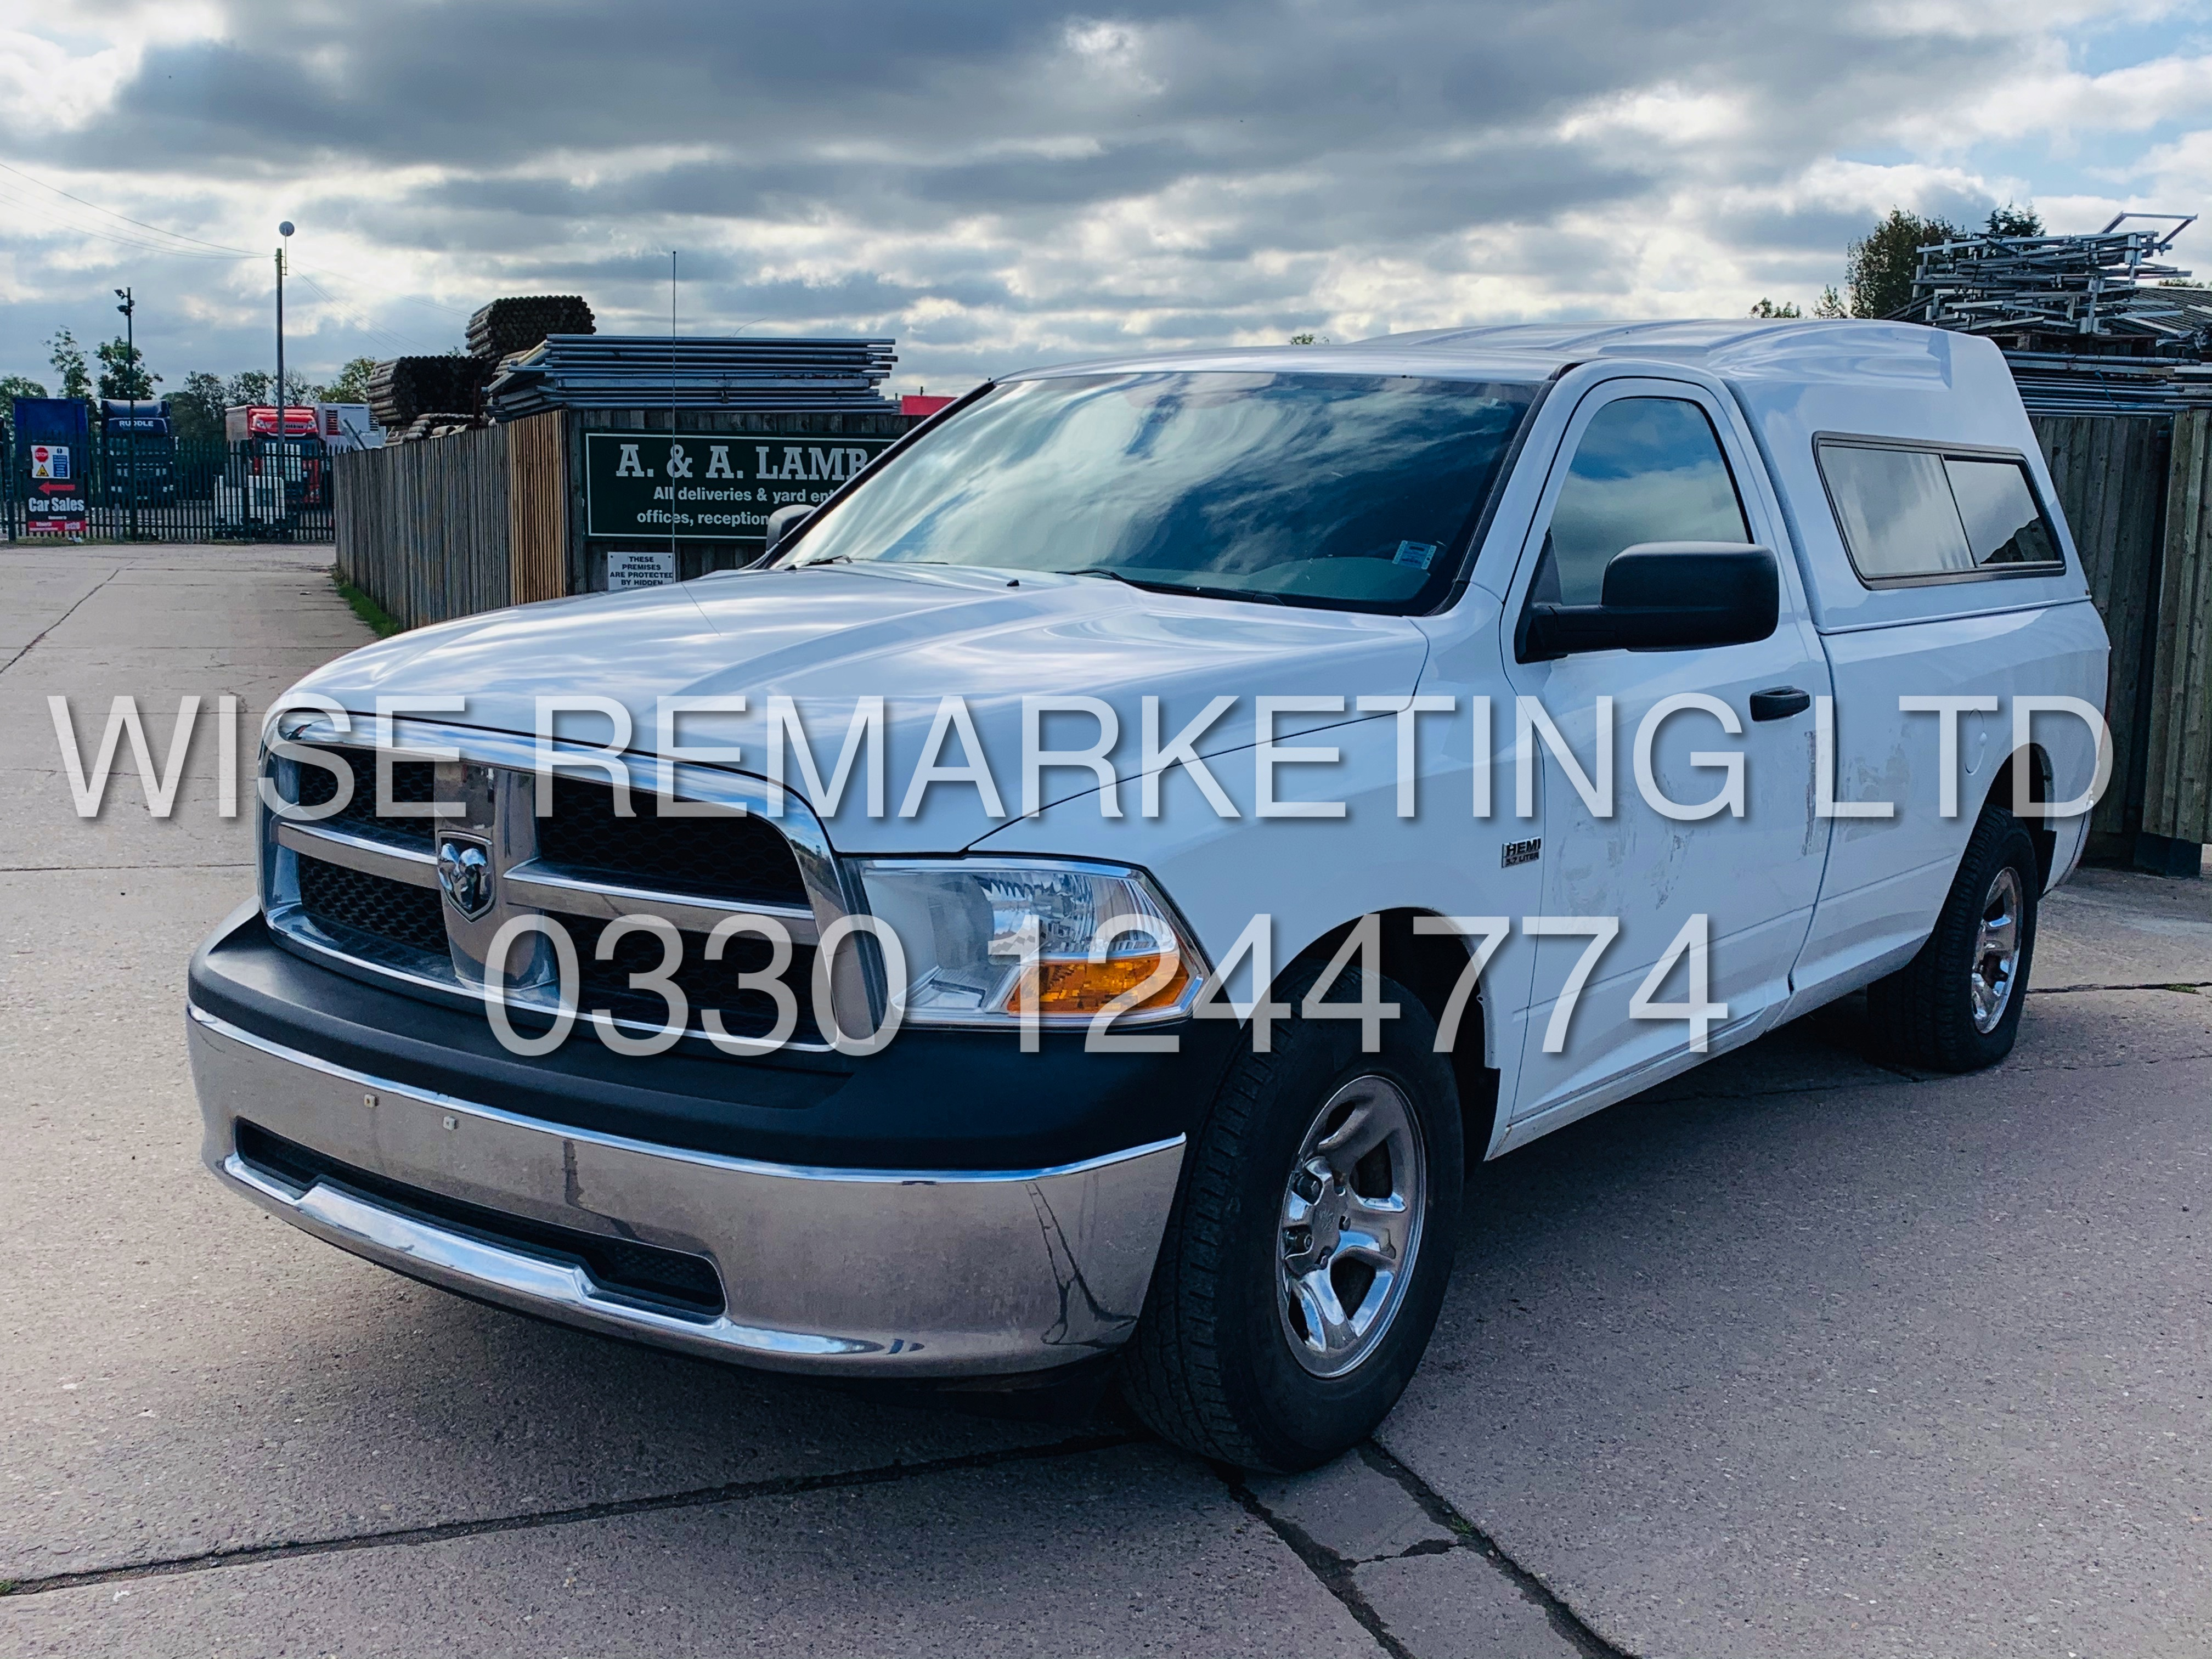 Lot 6 - ***RESERVE MET*** DODGE RAM 5.7L HEMI SINGLE-CAB**2011 YEAR****FRESH IMPORT**SHORT BOX**ULTRA RARE**